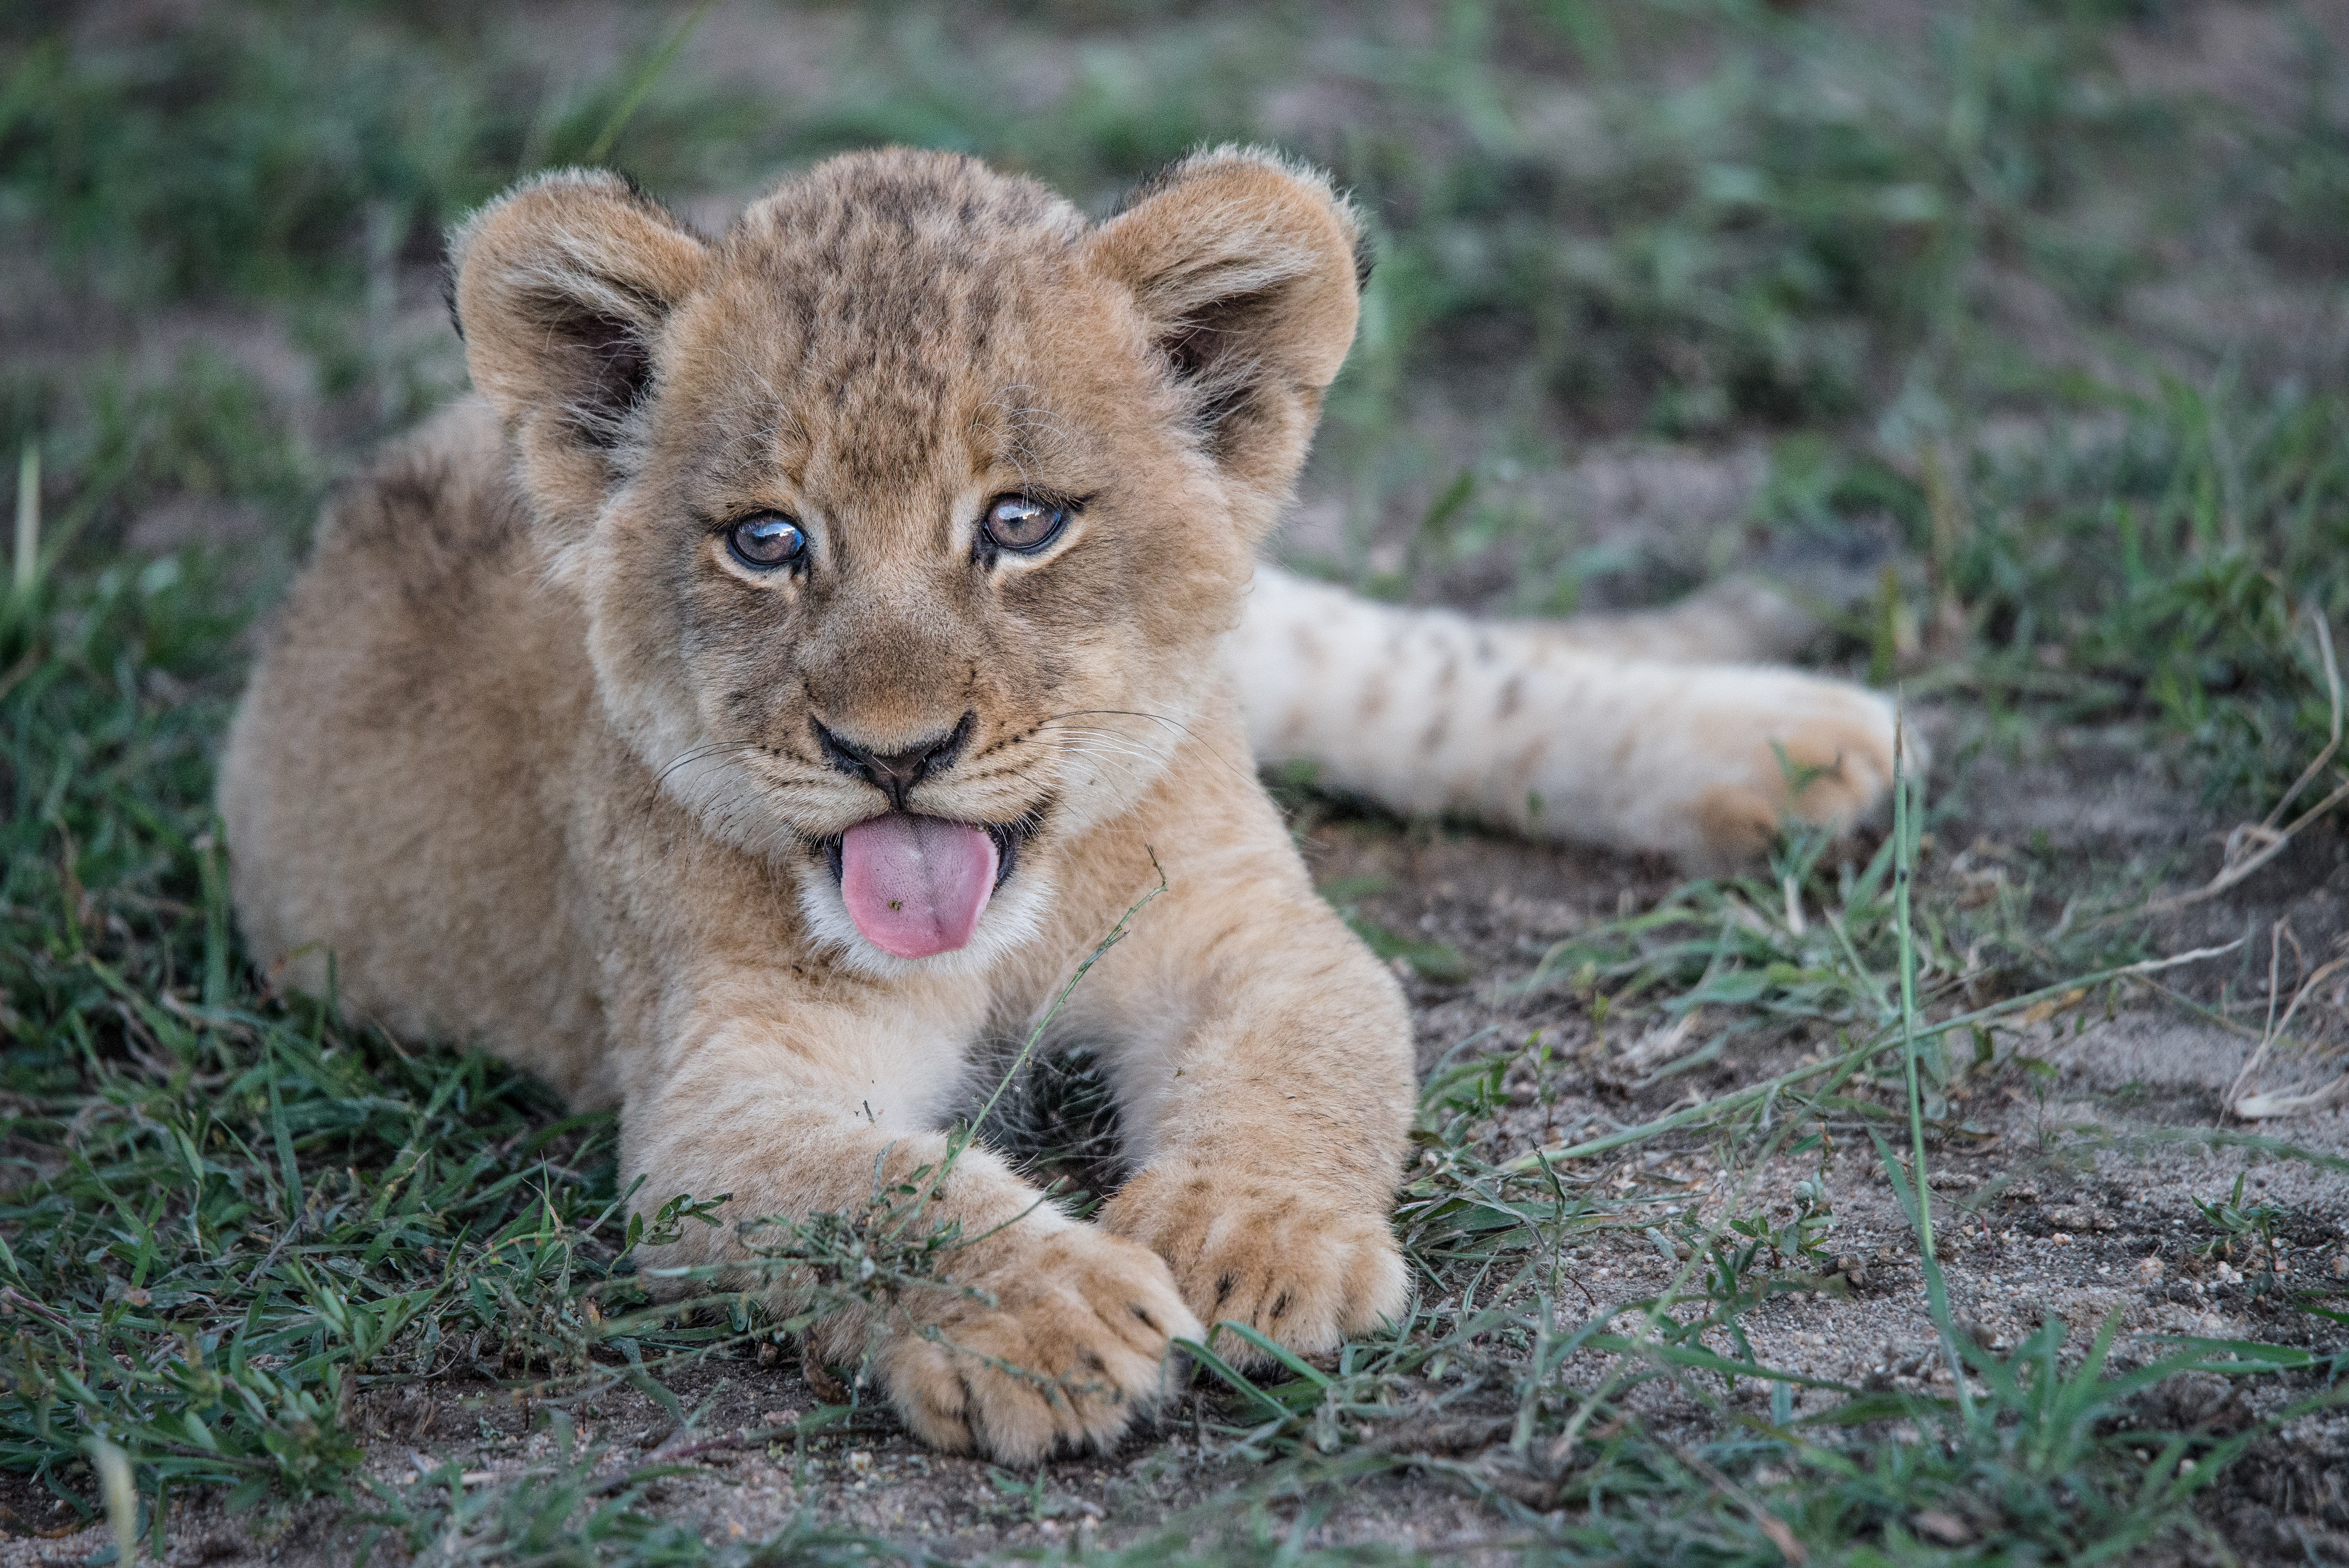 76640 download wallpaper Animals, Lion Cub, Lion, Muzzle, Protruding Tongue, Tongue Stuck Out screensavers and pictures for free